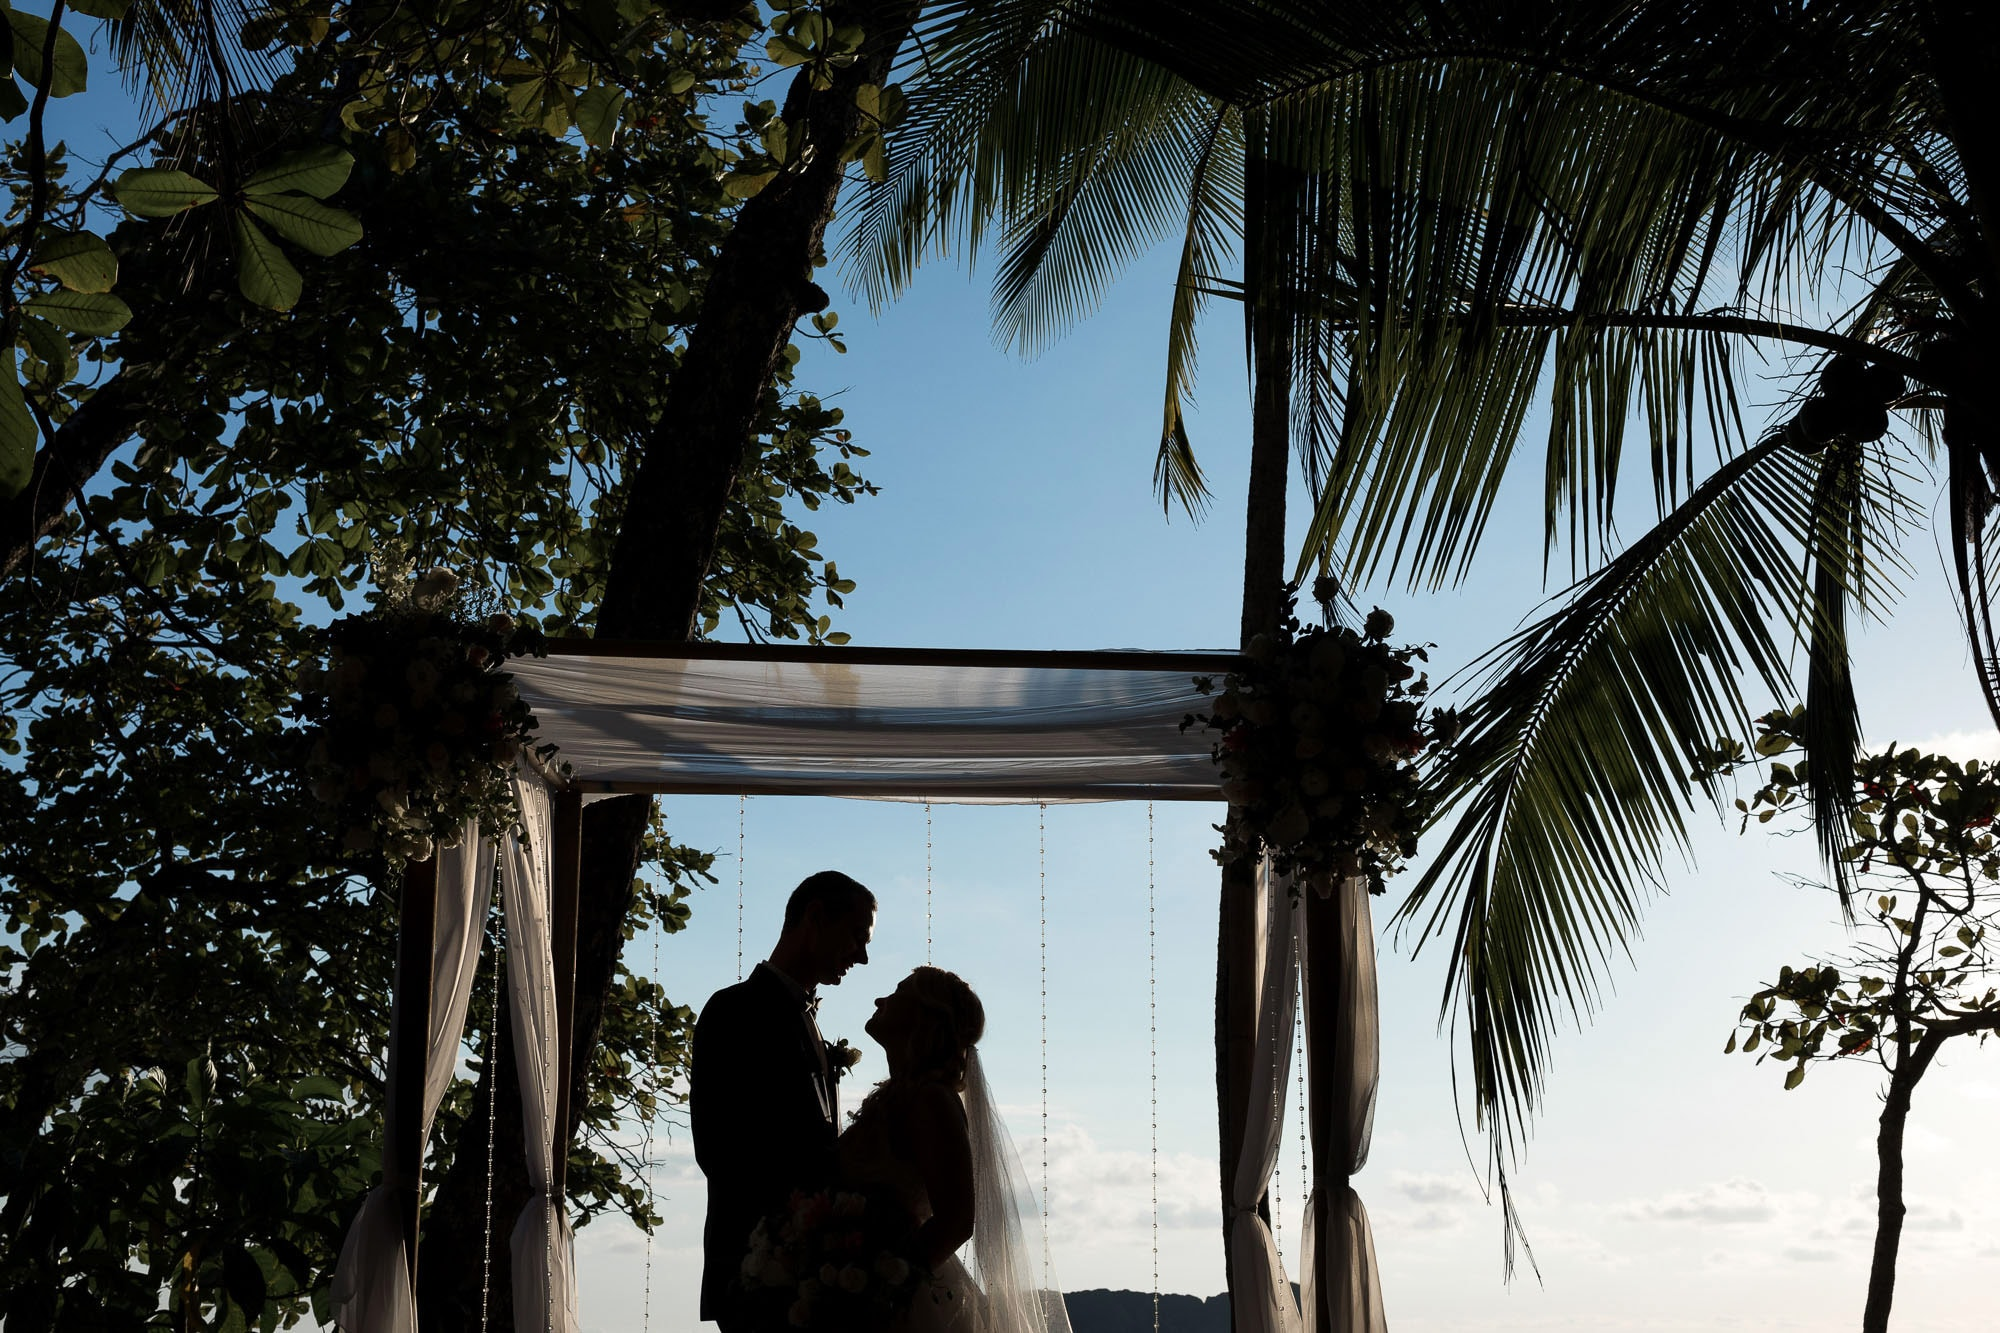 The bride and groom's silhouette perfectly placed in the middle of their wedding arbor.